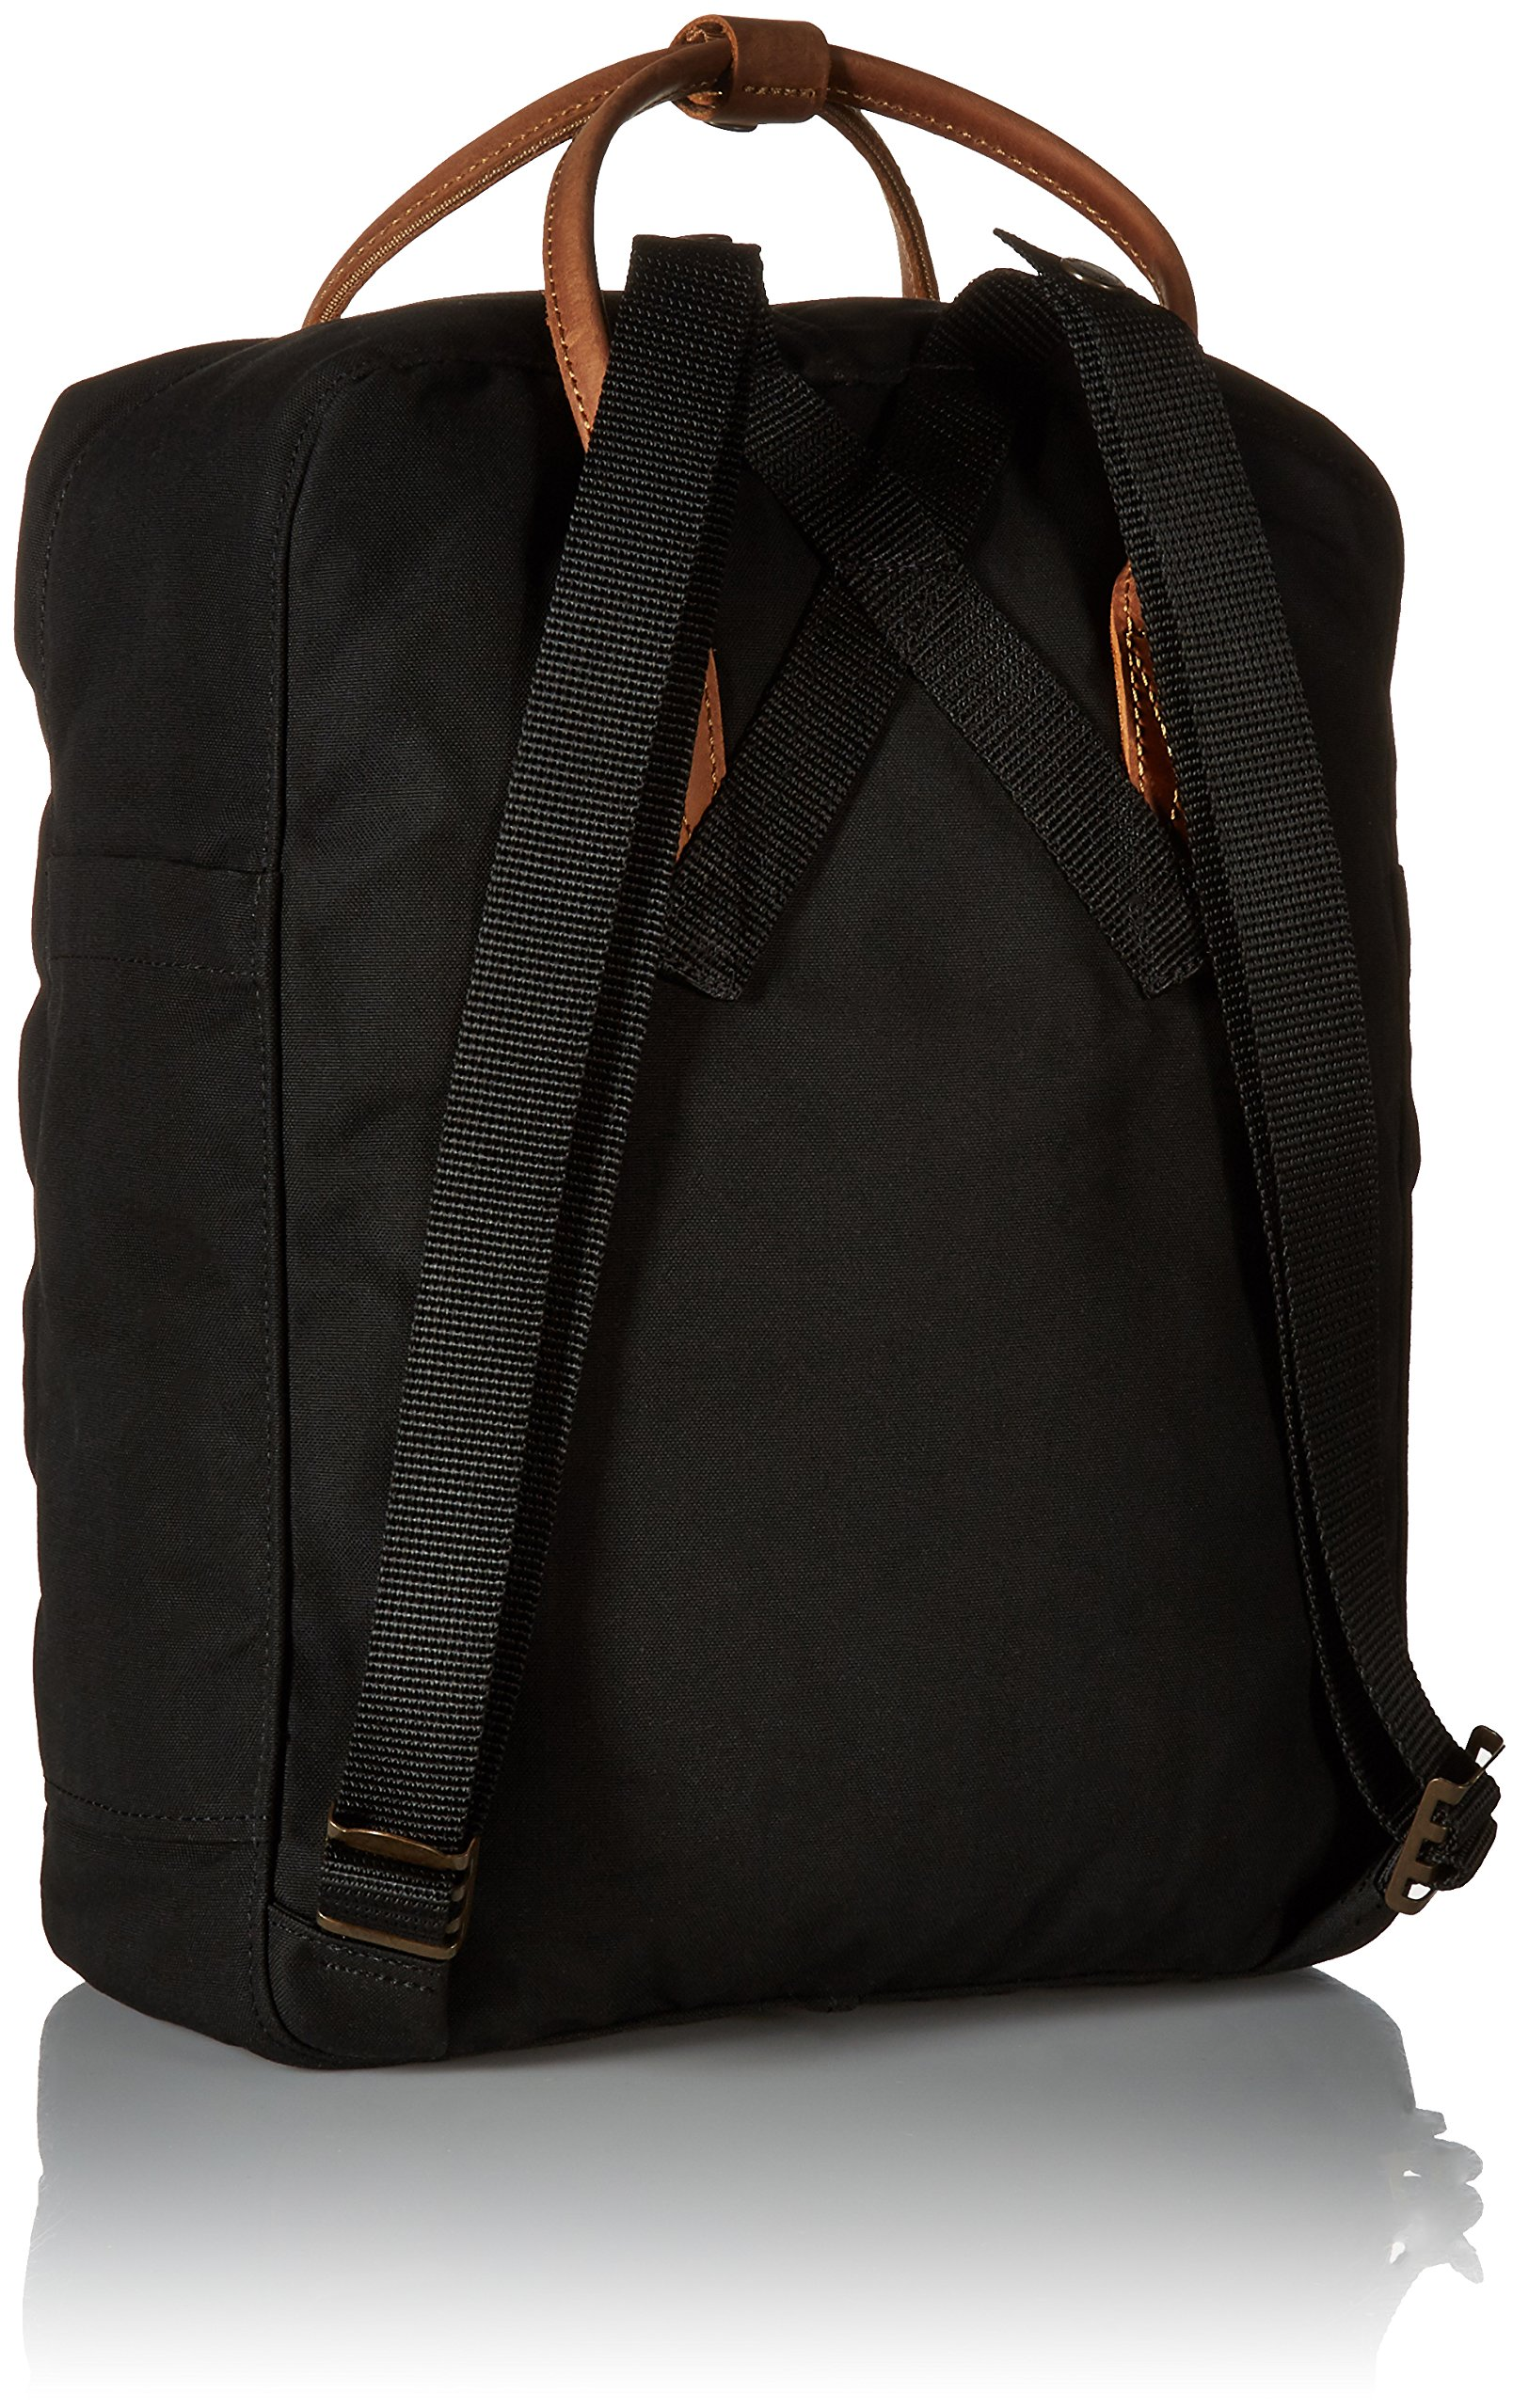 Fjallraven - Kanken No. 2, Heritage and Responsibility Since 1960, Black by Fjällräven (Image #2)